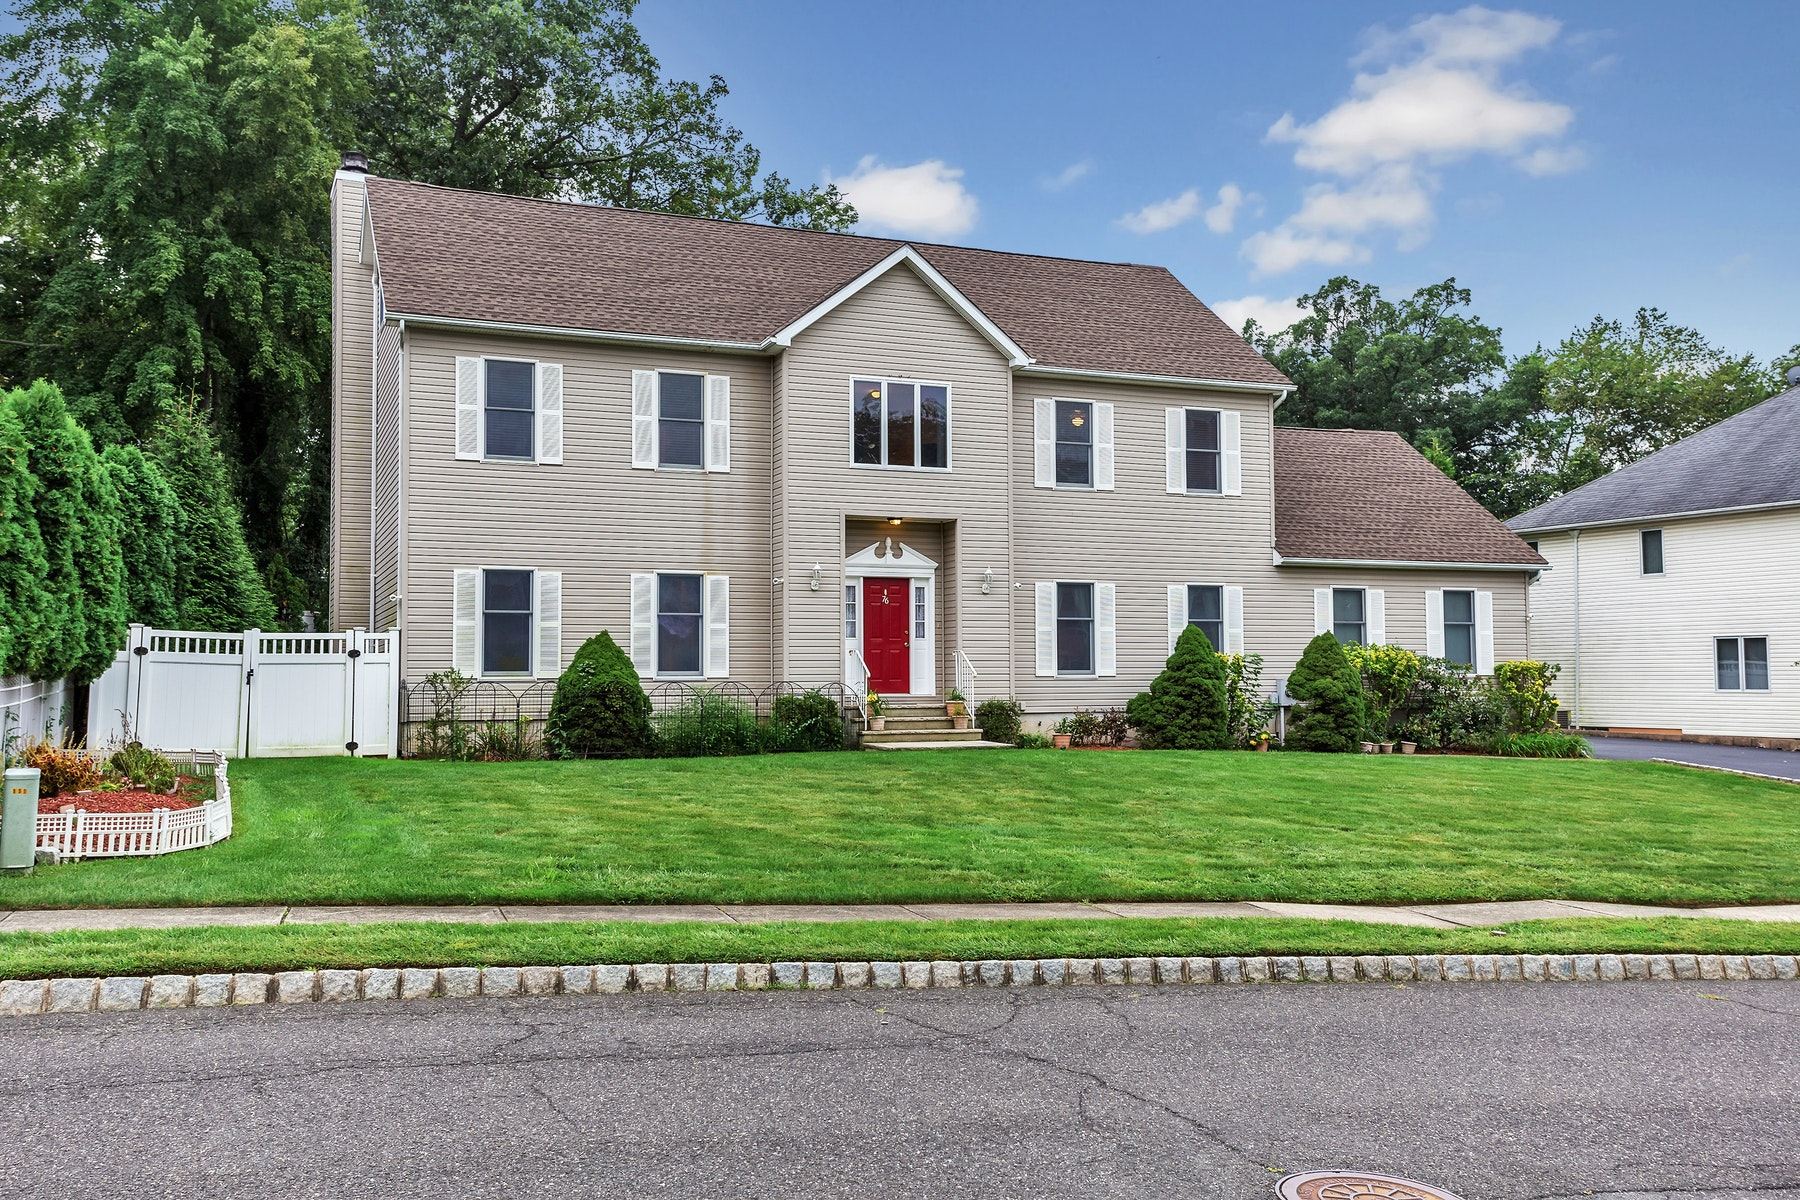 Single Family Homes for Sale at Beautiful Colonial on Cul de Sac 76 New Street Wayne, New Jersey 07470 United States